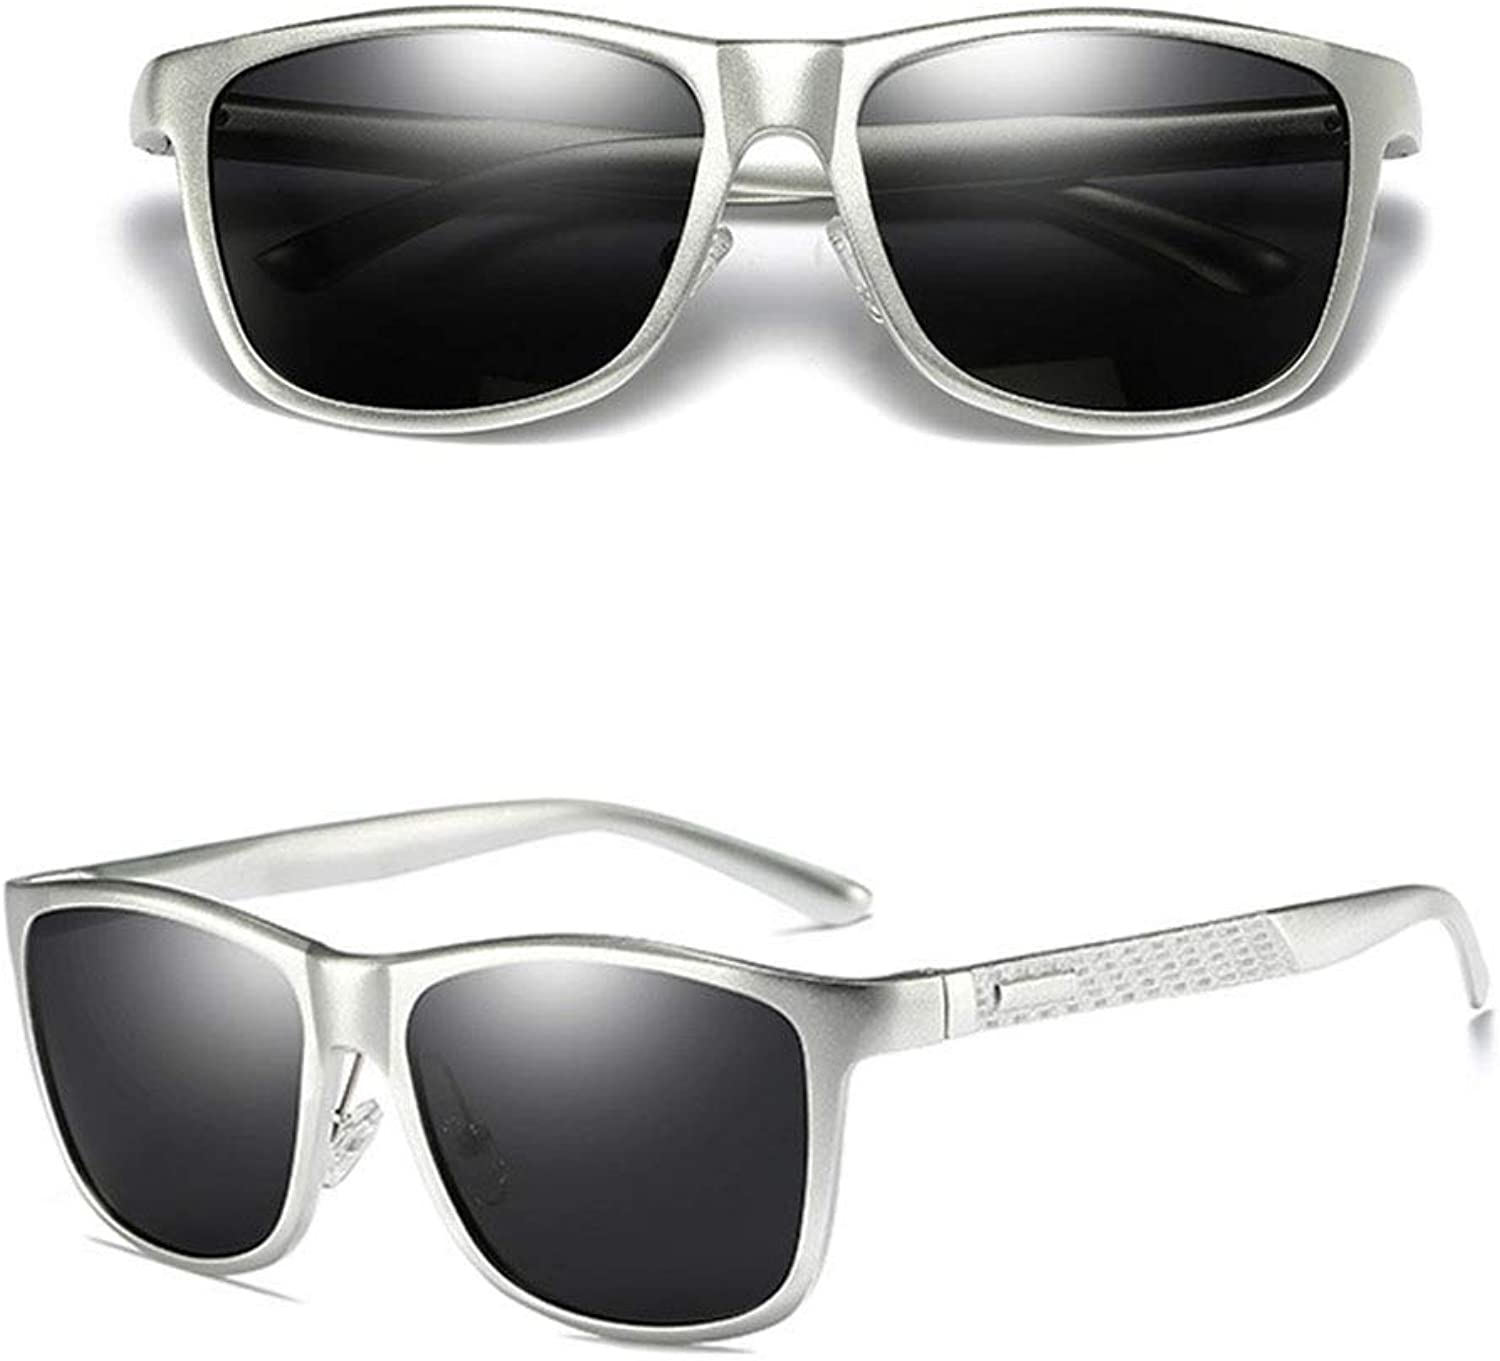 Men's Fashion Full Frame Al-Mg Alloy Polarized Outdoor Sunglasses with Case (color   Silver Frame)